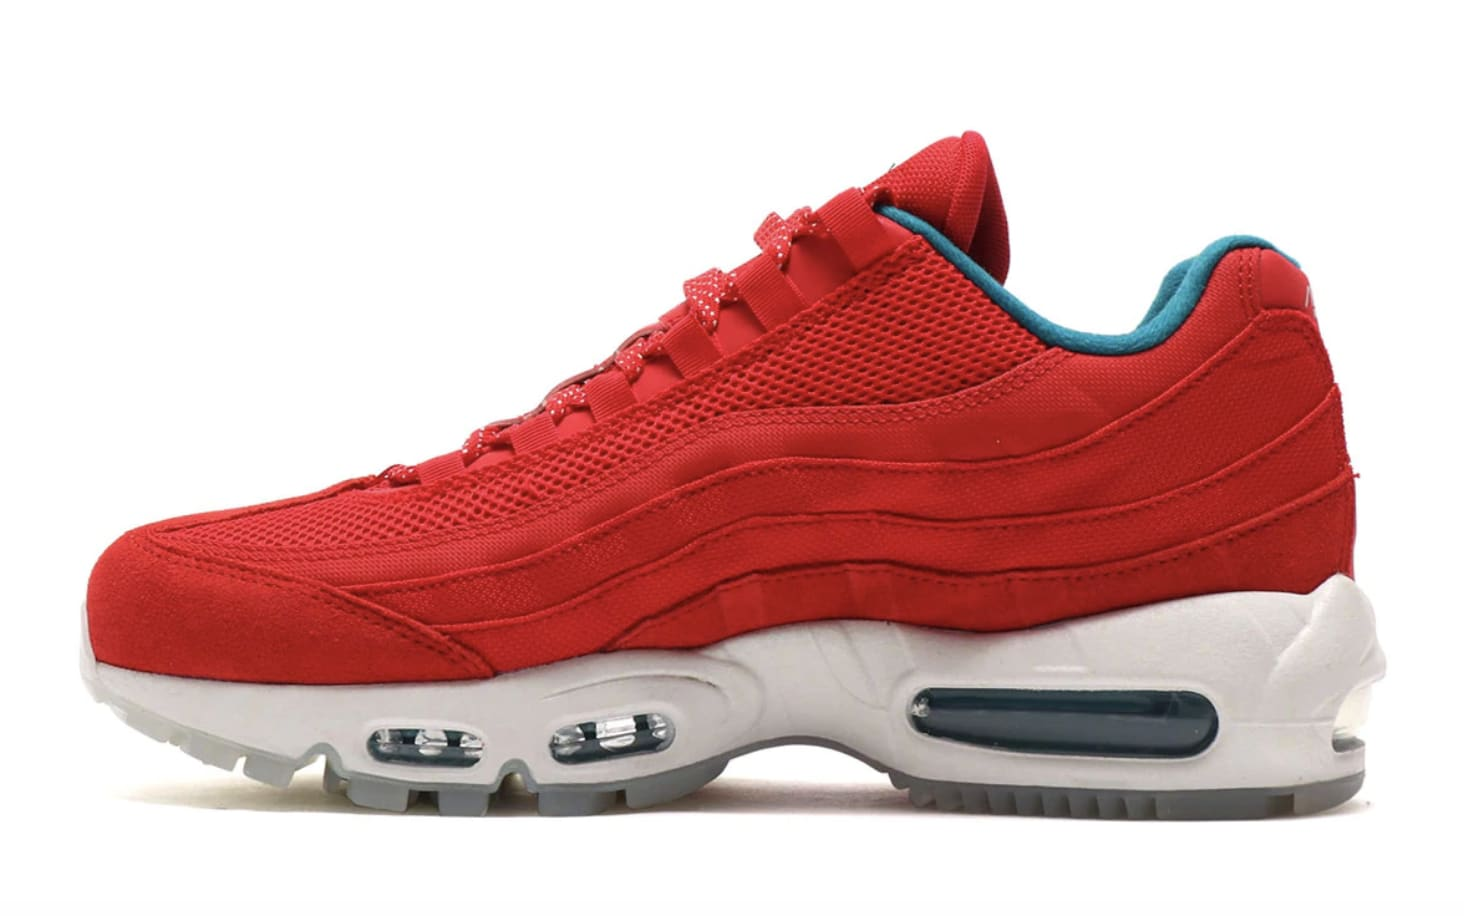 nike-air-max-95-mt-fuji-ct3689-600-medial